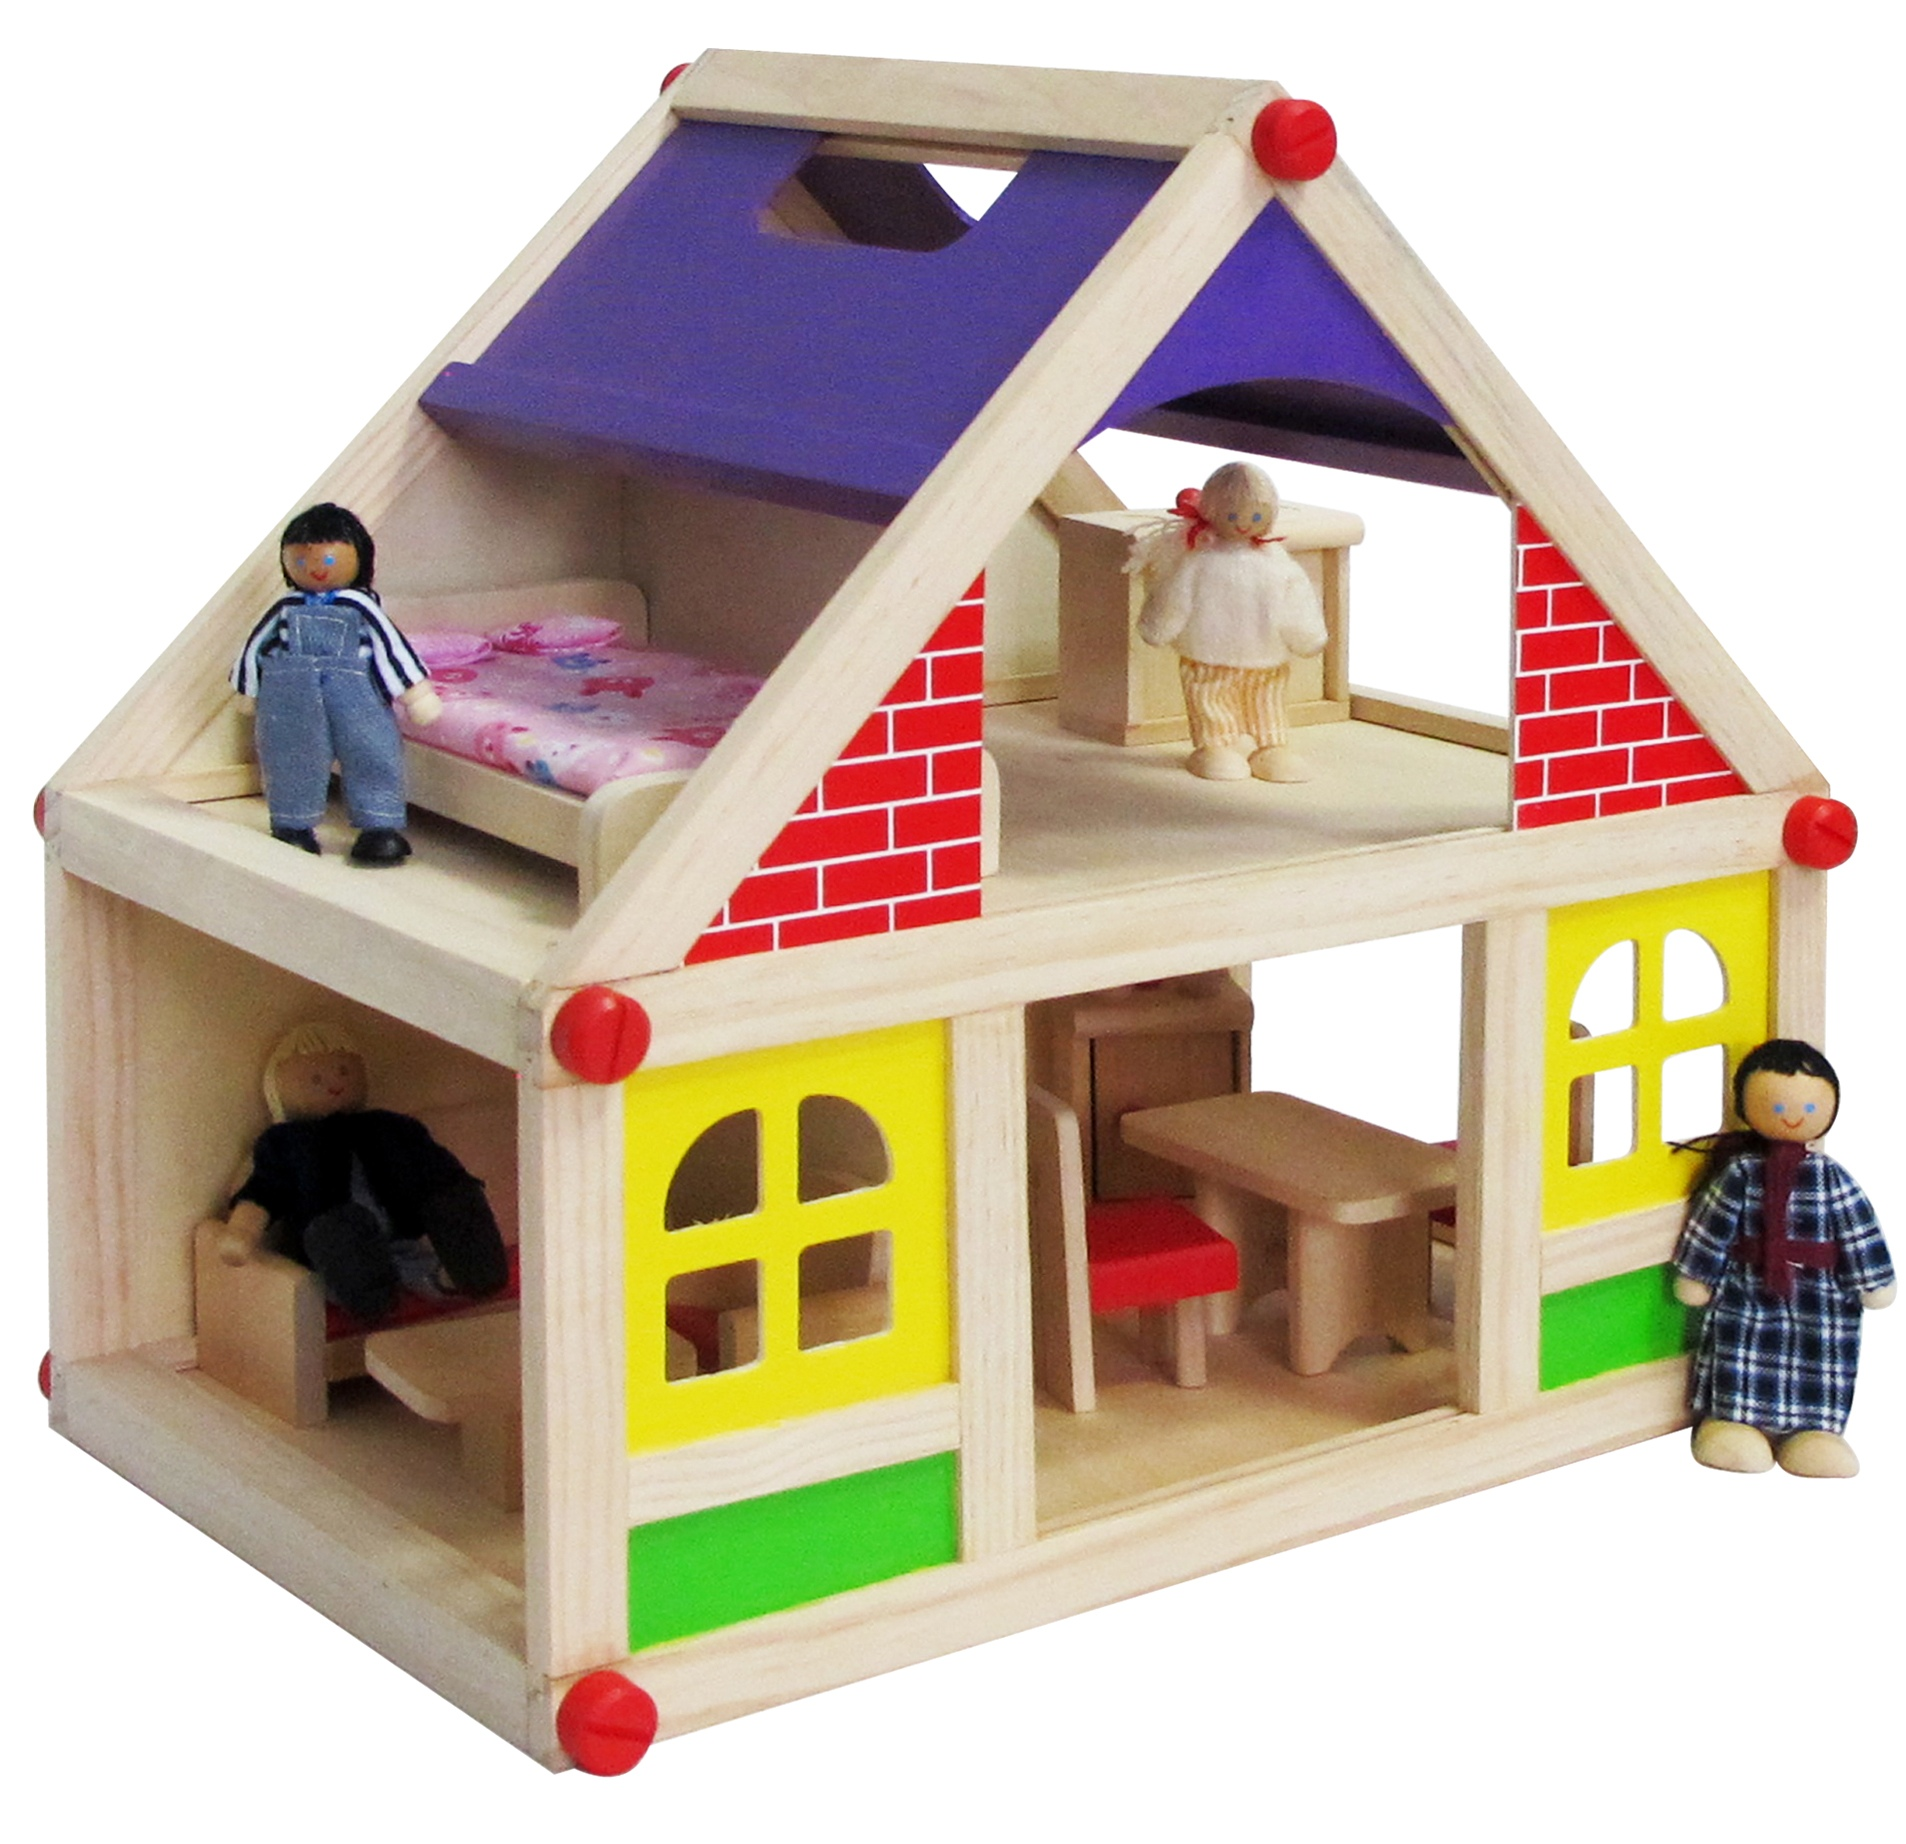 Children Kids 13pc Wooden Doll House Toy Furniture Figurines Educational Gift Ebay